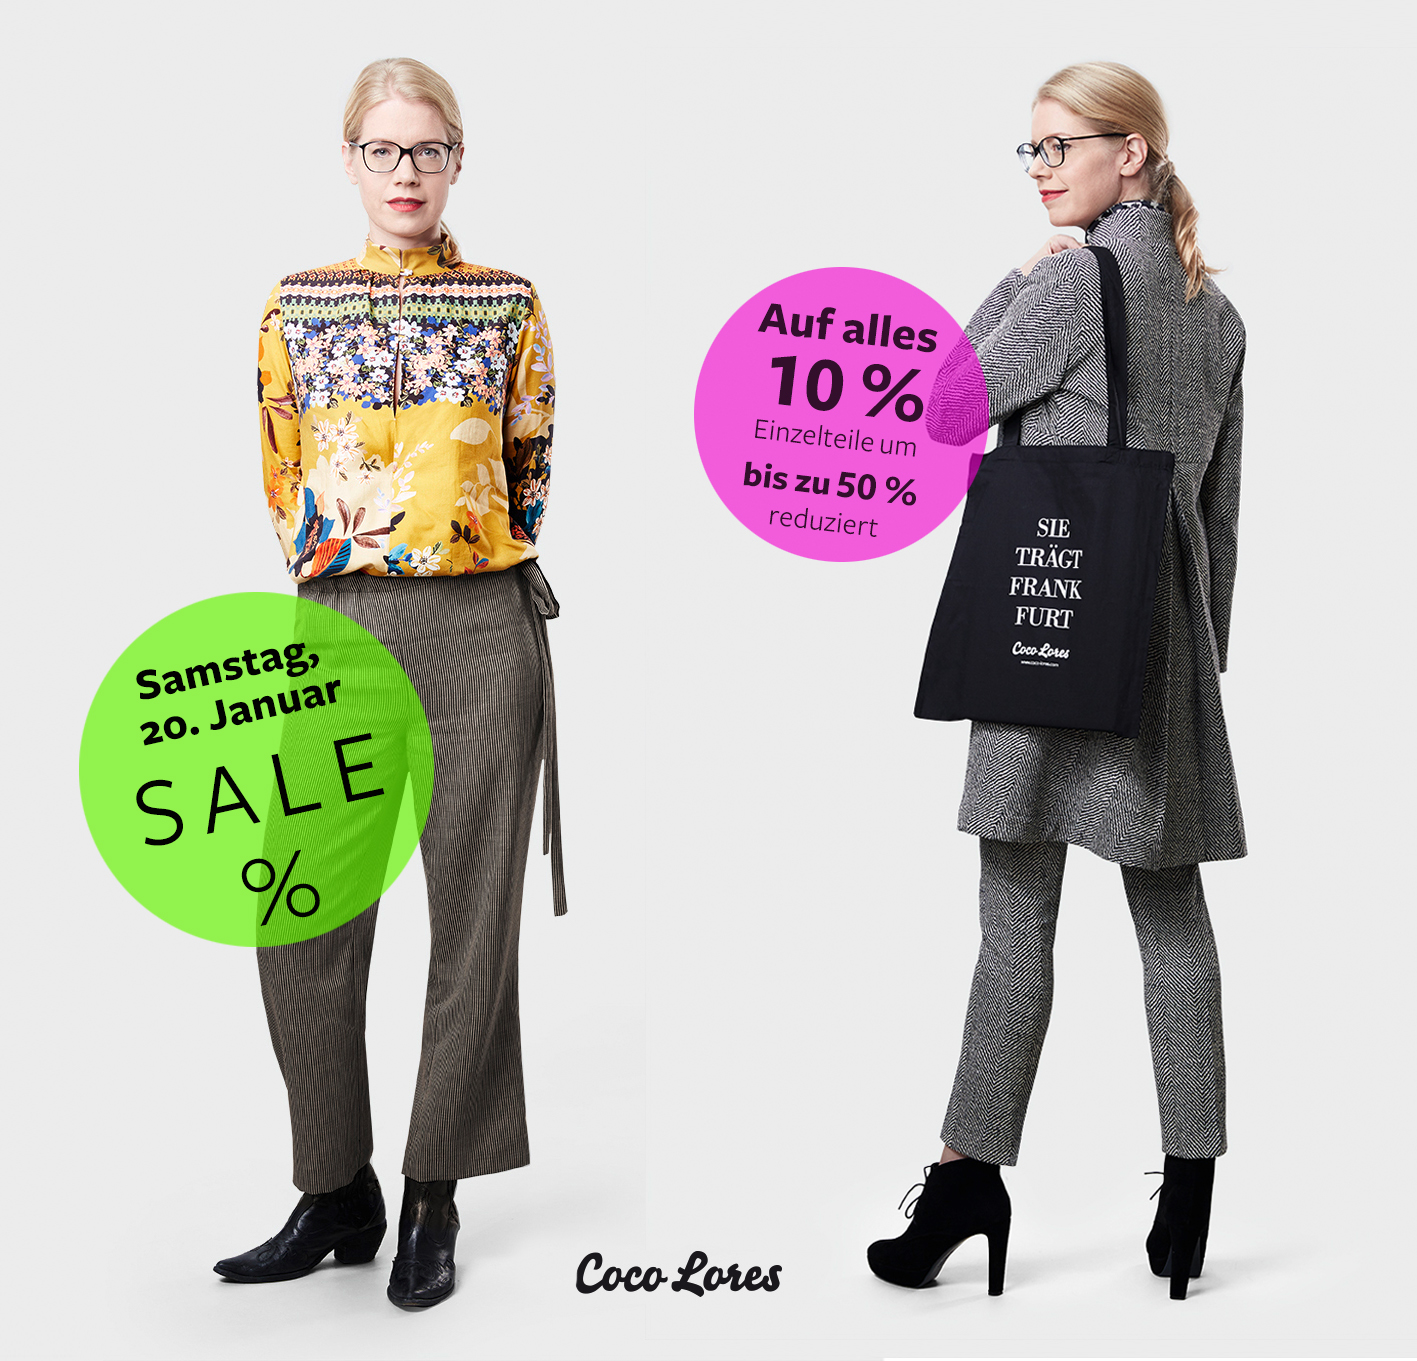 SALE Coco Lores fashion